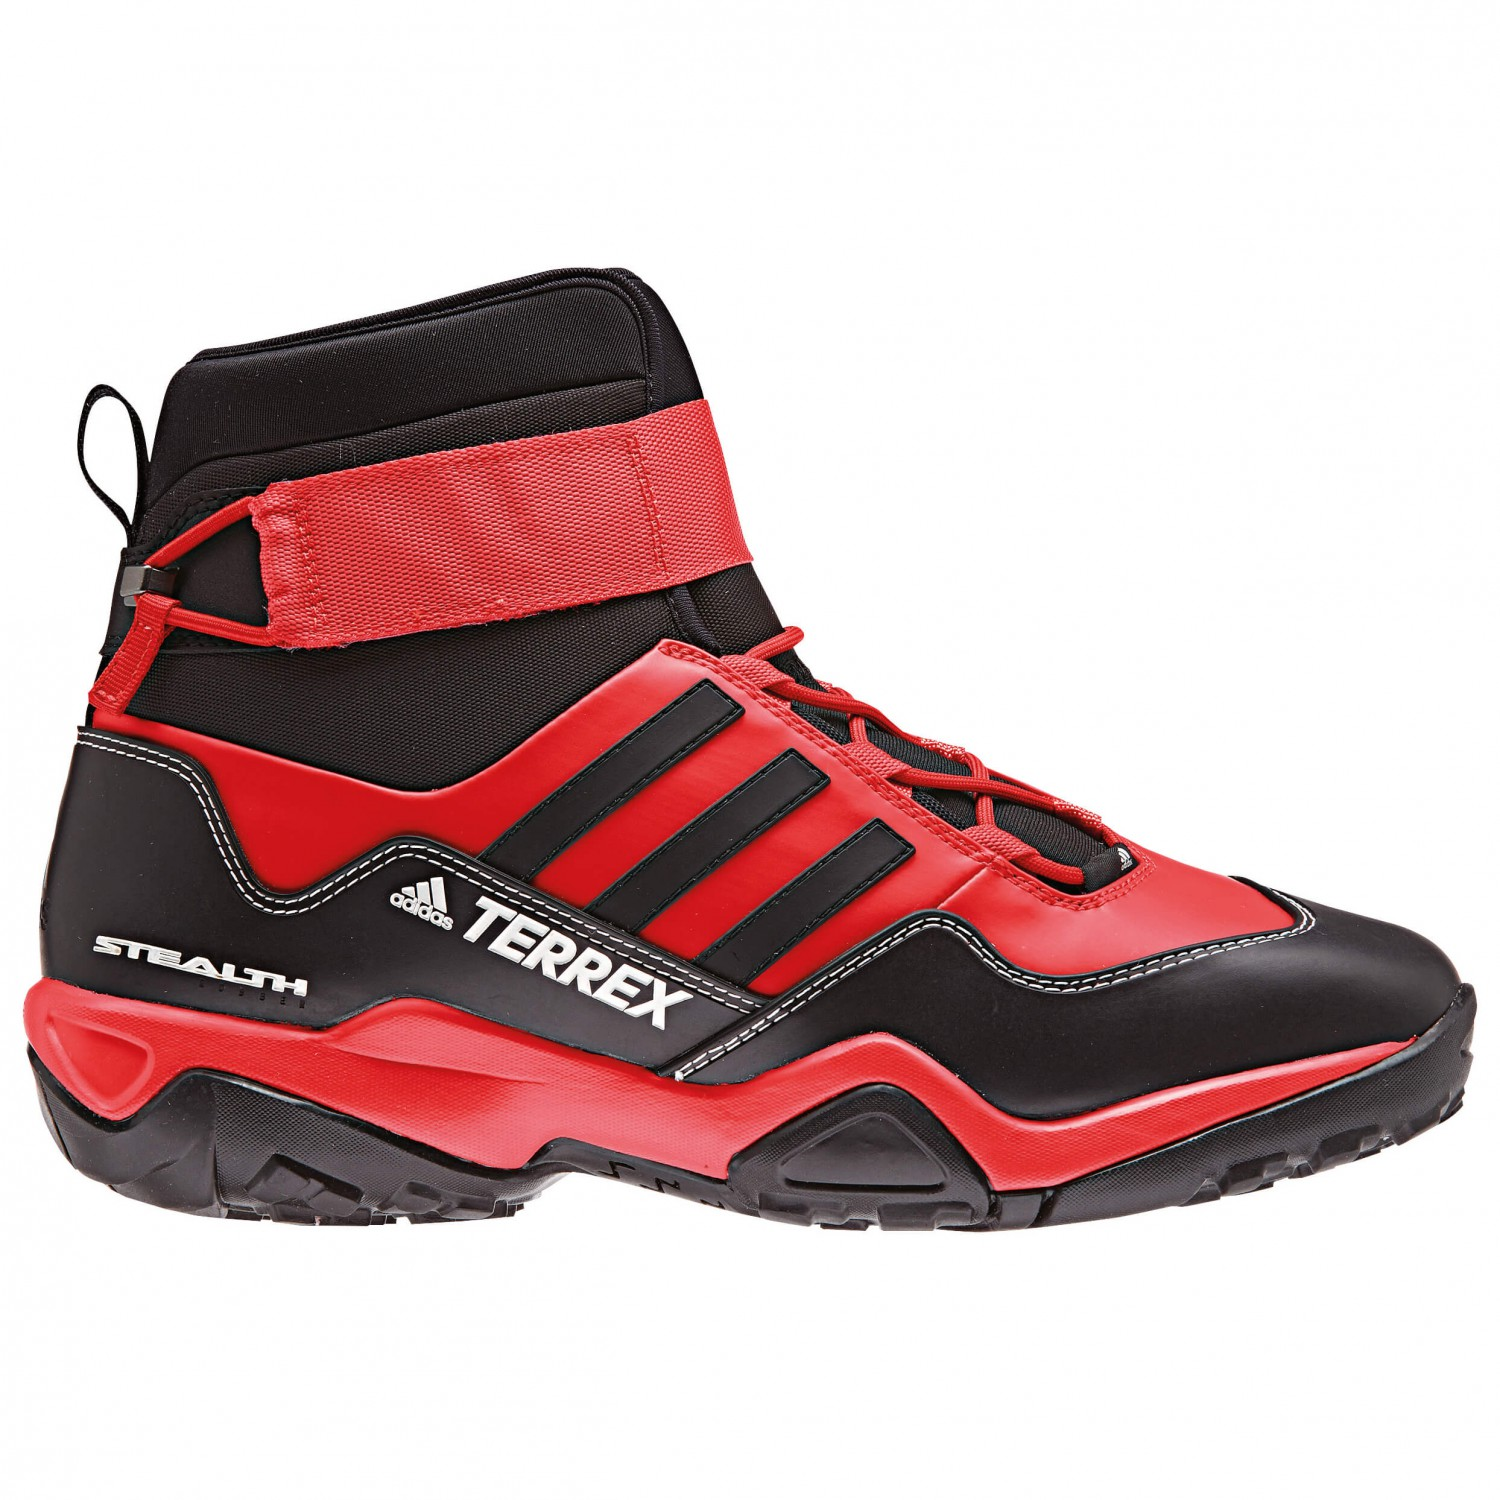 Adidas Terrex Hydro Lace Water Shoes Free Uk Delivery